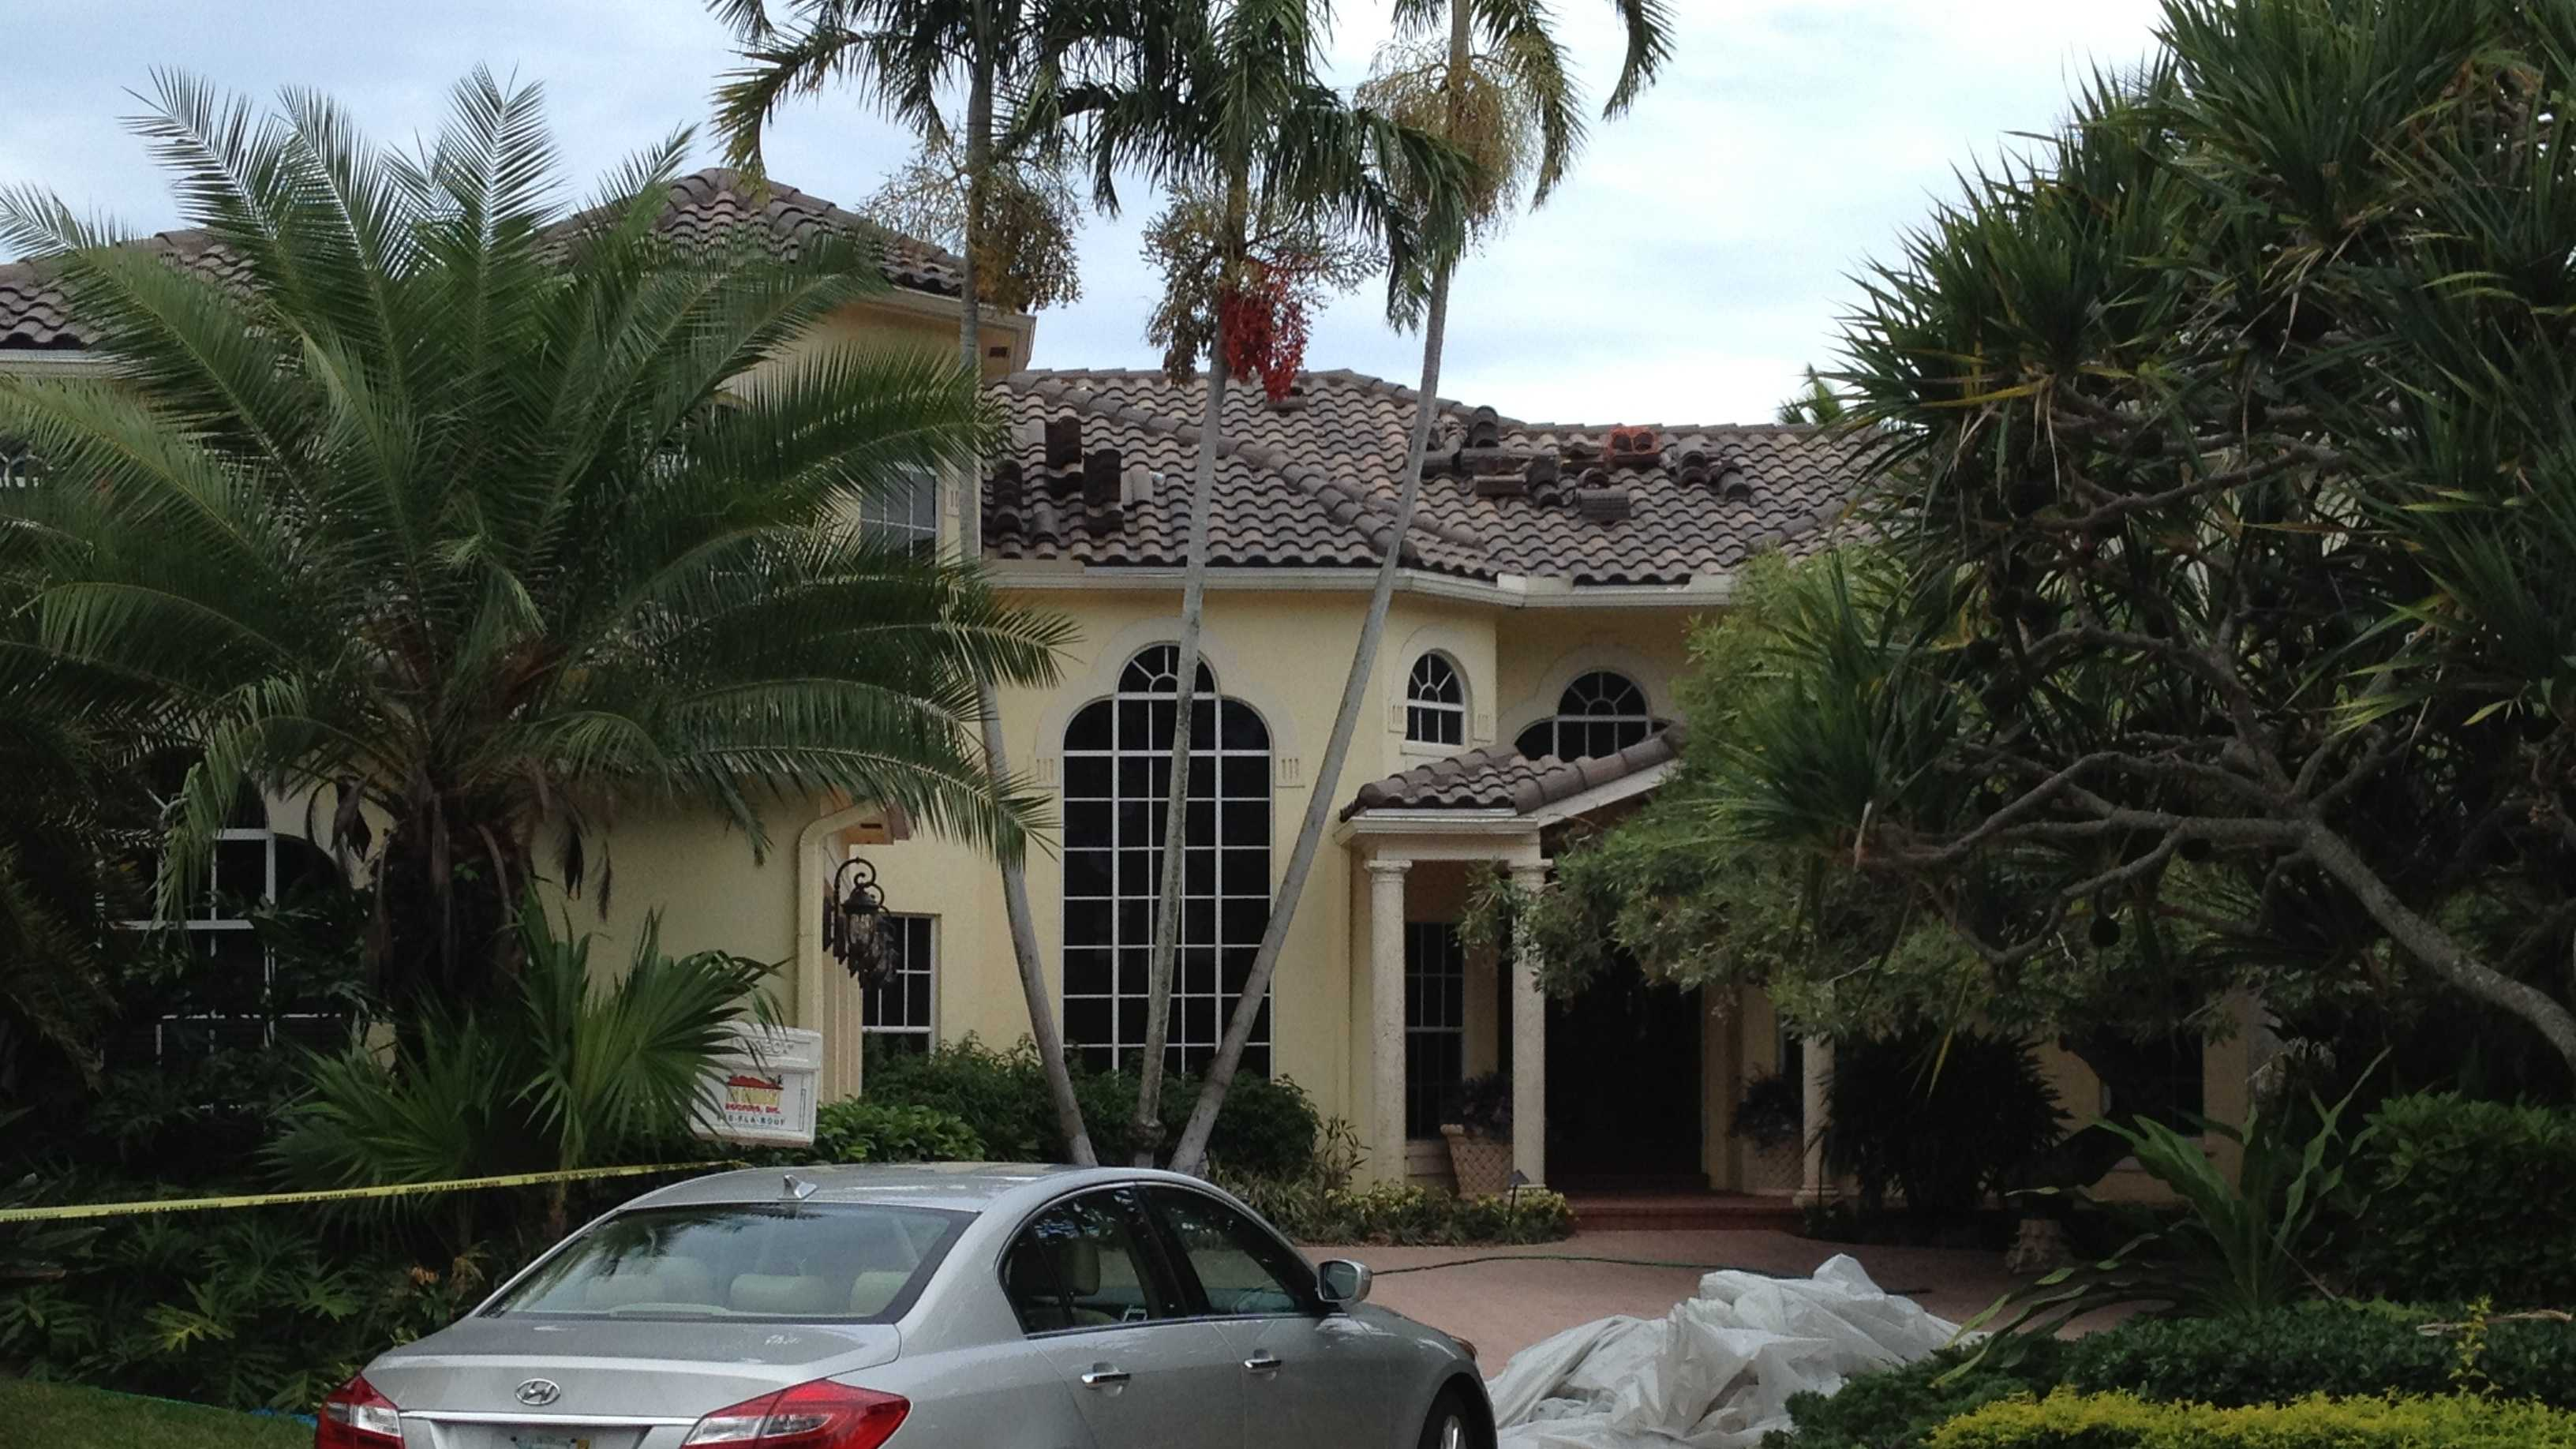 A 21-year-old man was electrocuted while working on this home in Boca Raton.